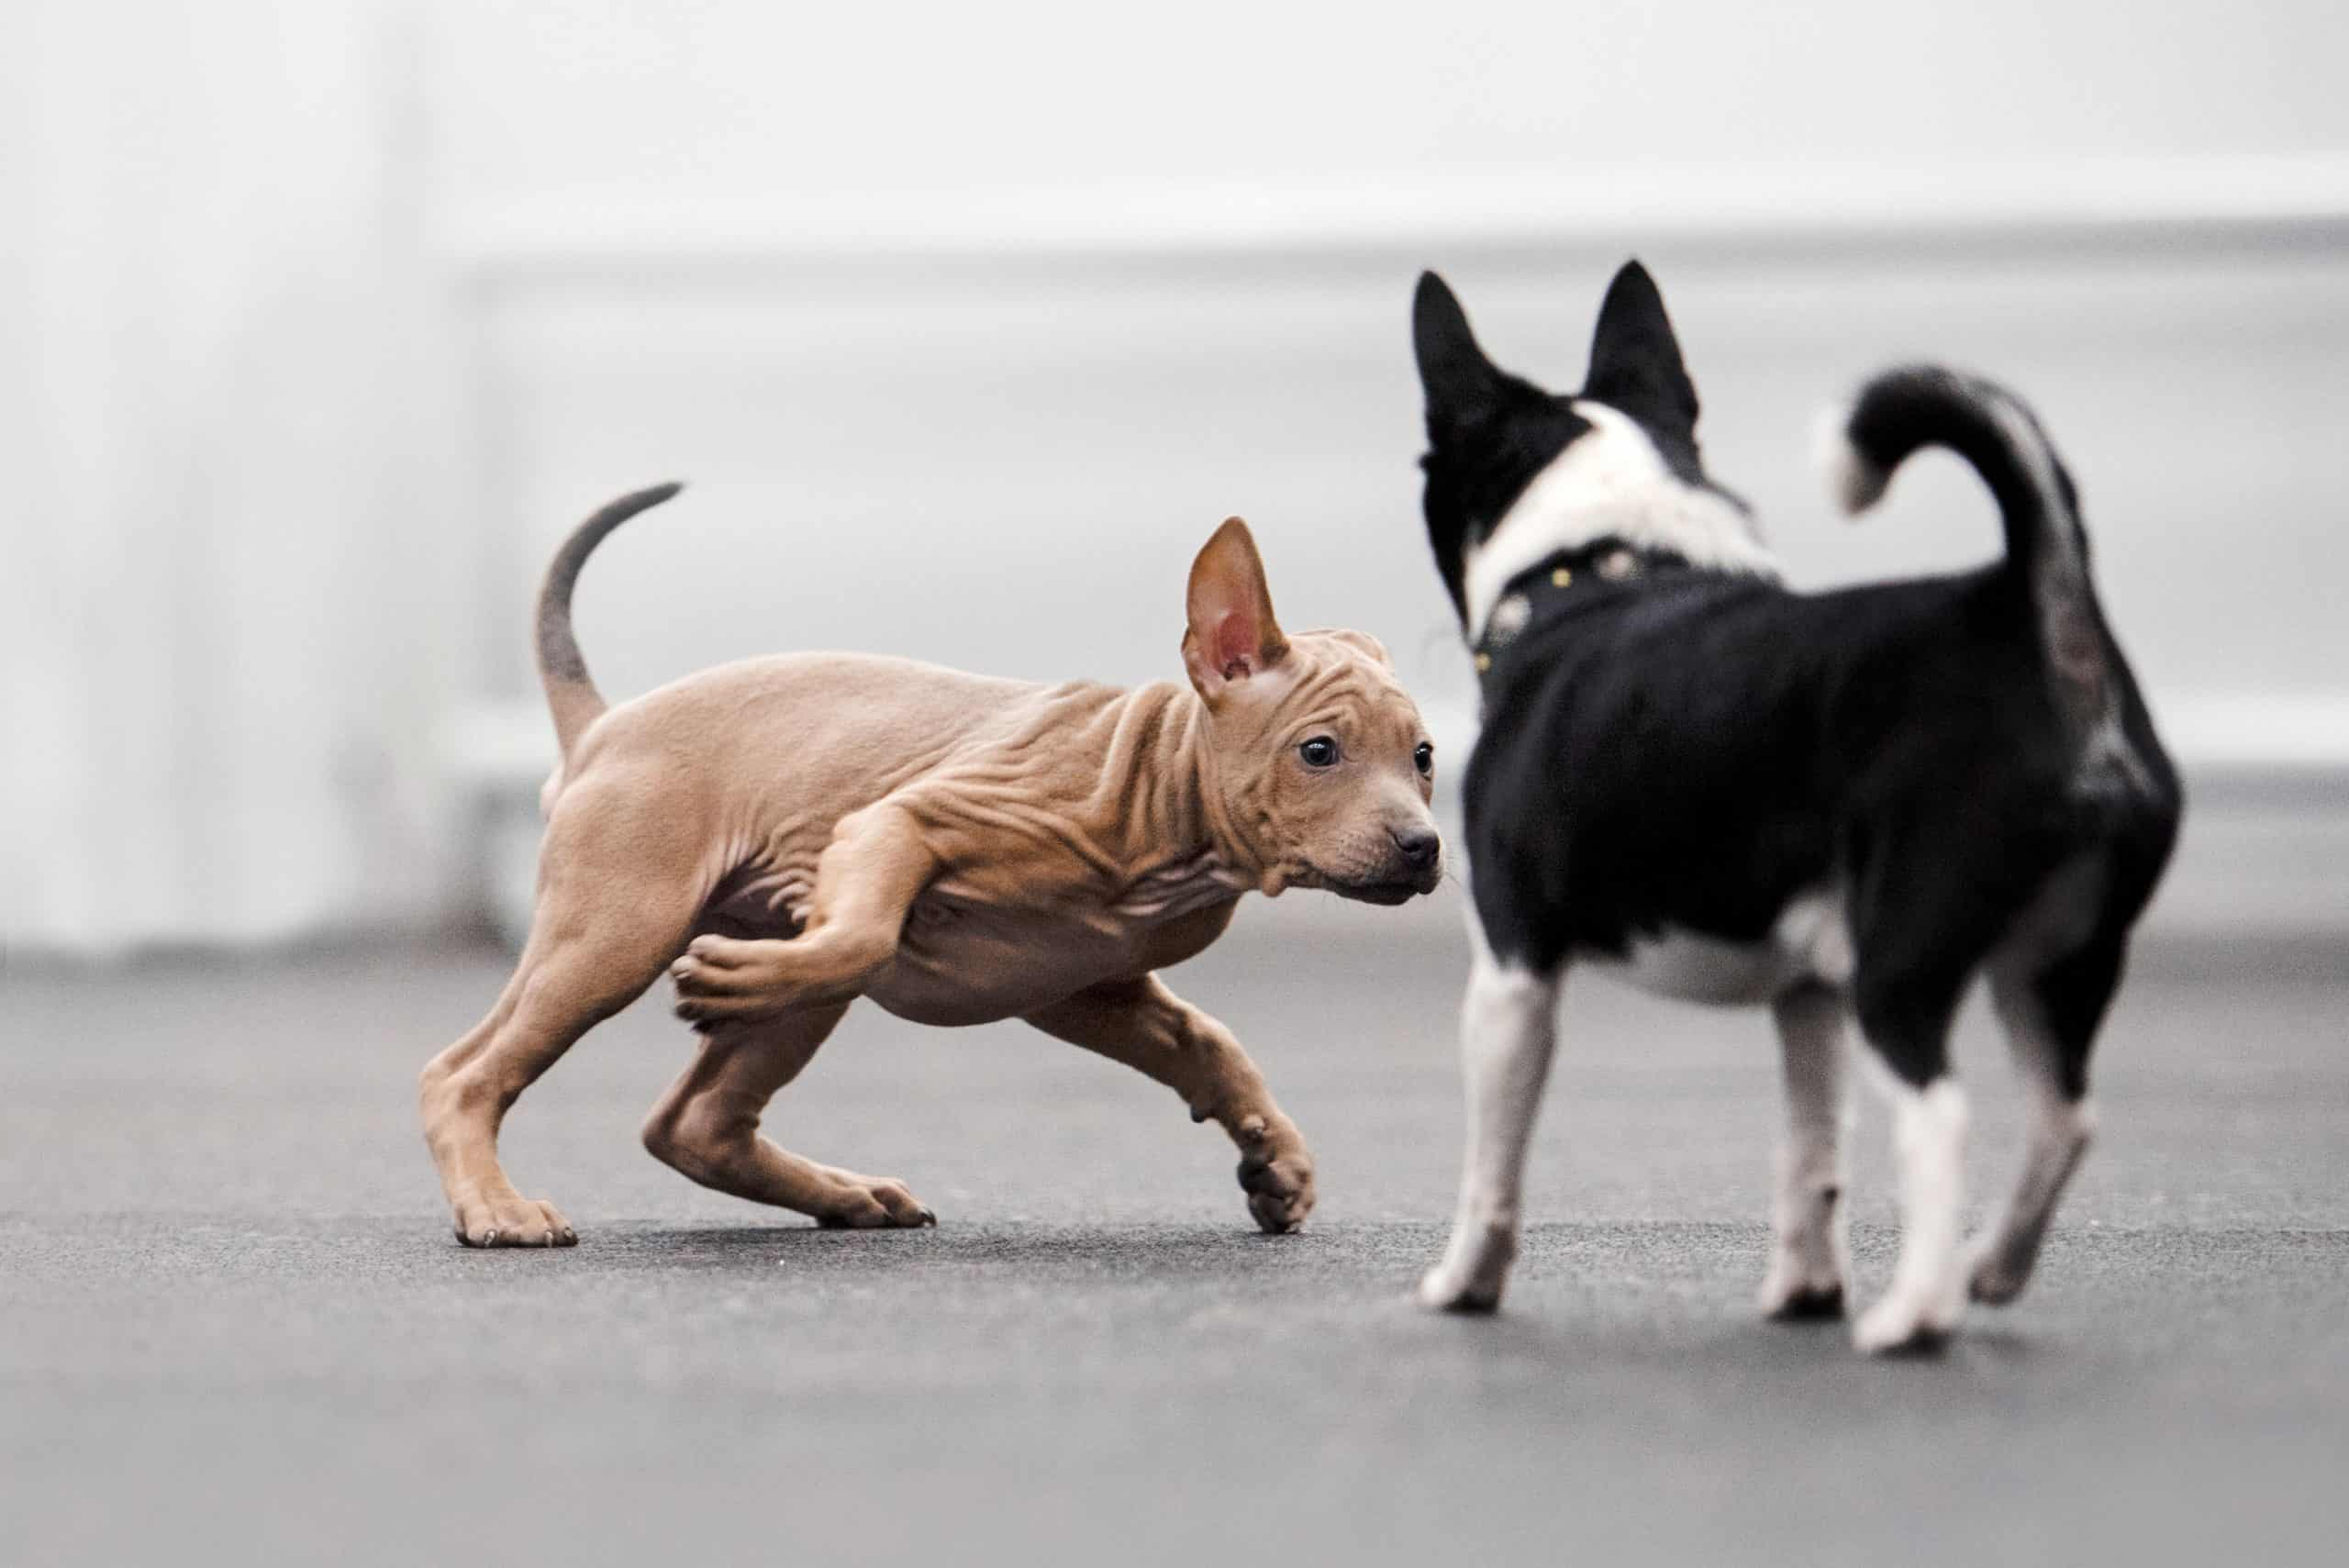 A Xoloitzcuintili puppy plays with a Border Collie puppy. Dog playdates are a great way to bond with your dog and give her opportunities to socialize with other dogs.